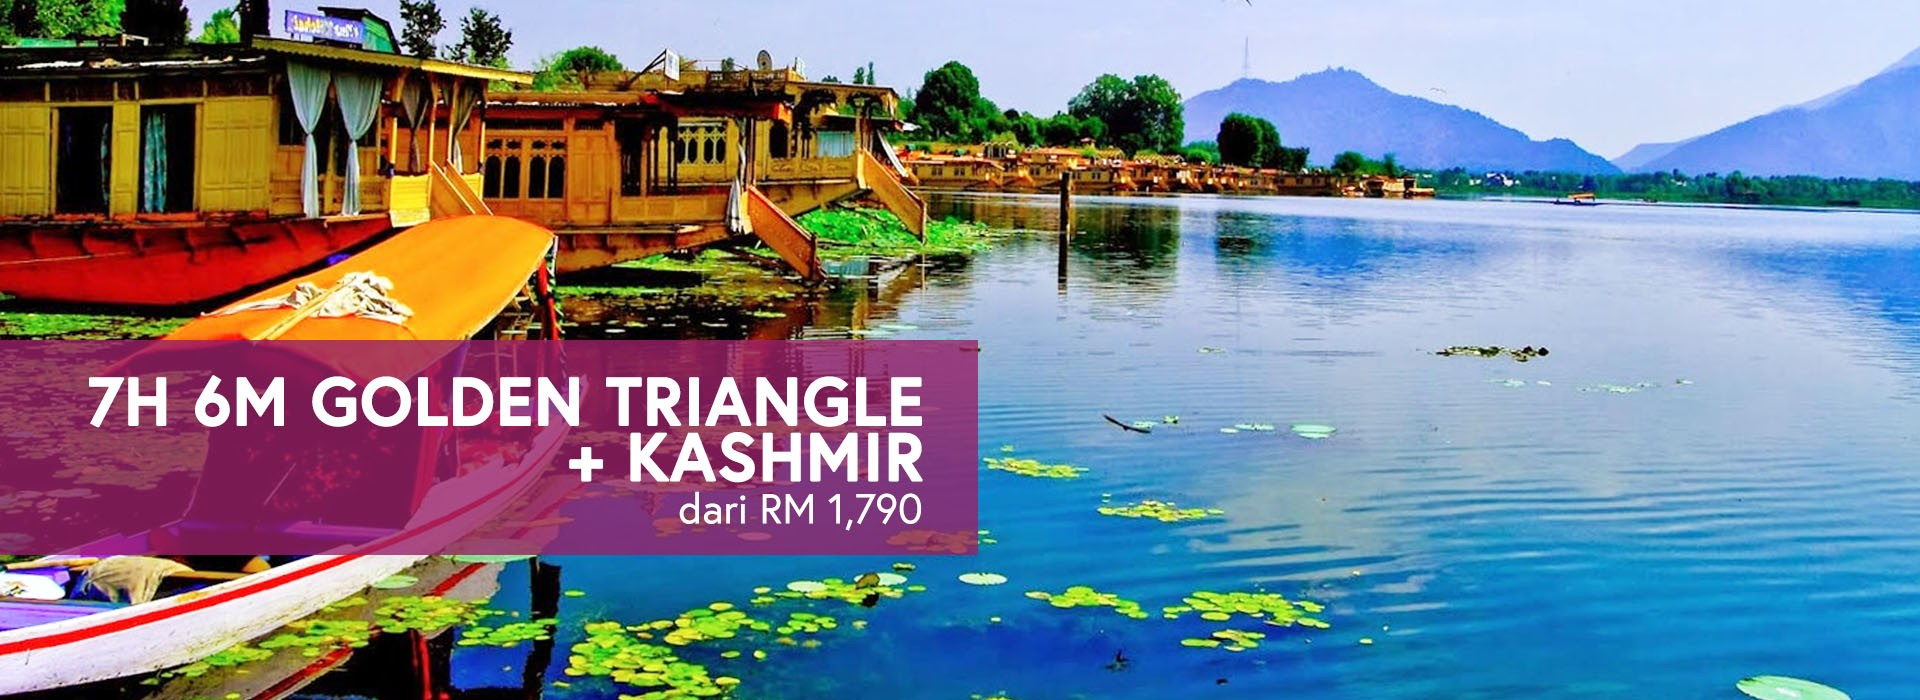 7H 6M GOLDEN TRIANGLE + KASHMIR